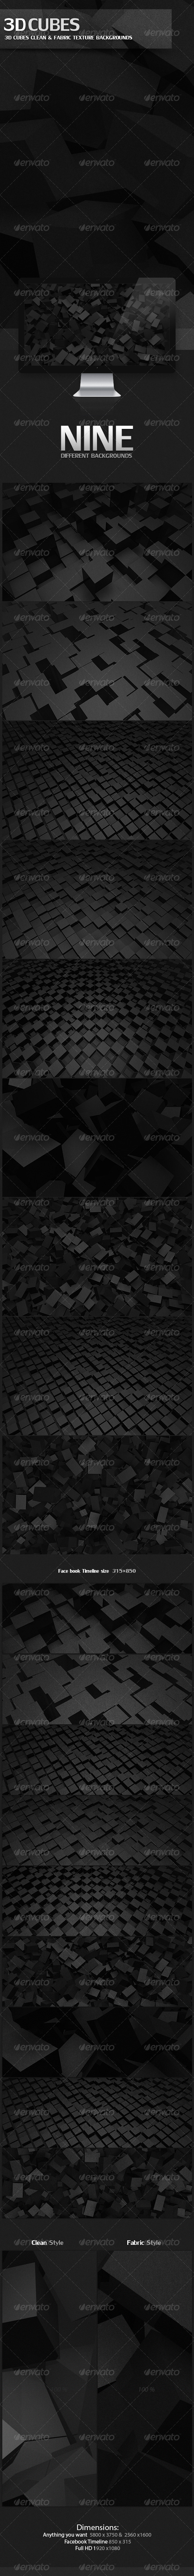 GraphicRiver 3D Cubes Clean & Fabric Texture Backgrounds 4052353